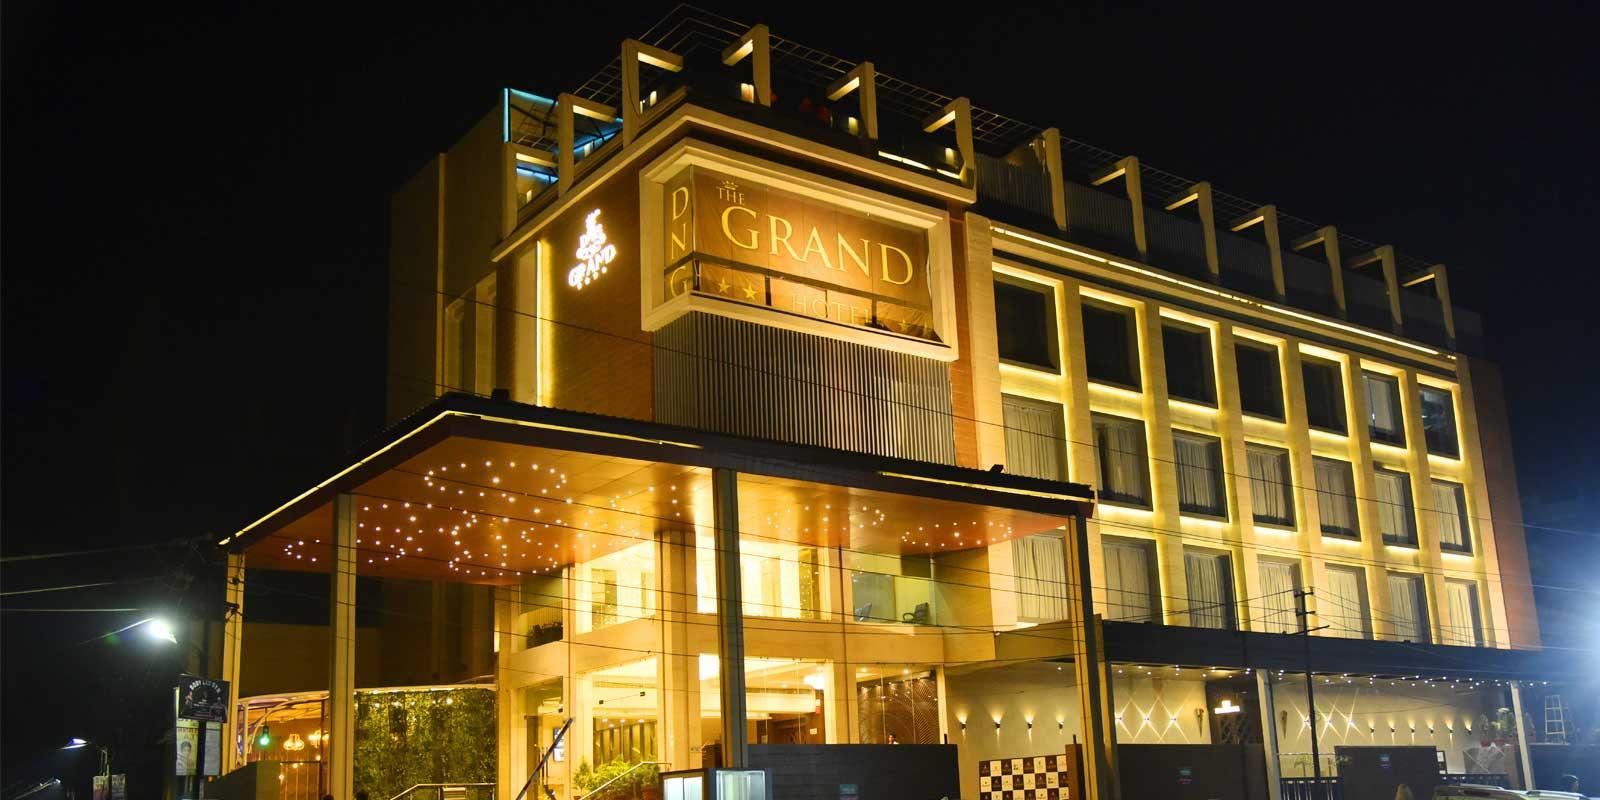 DNG THE GRAND HOTEL